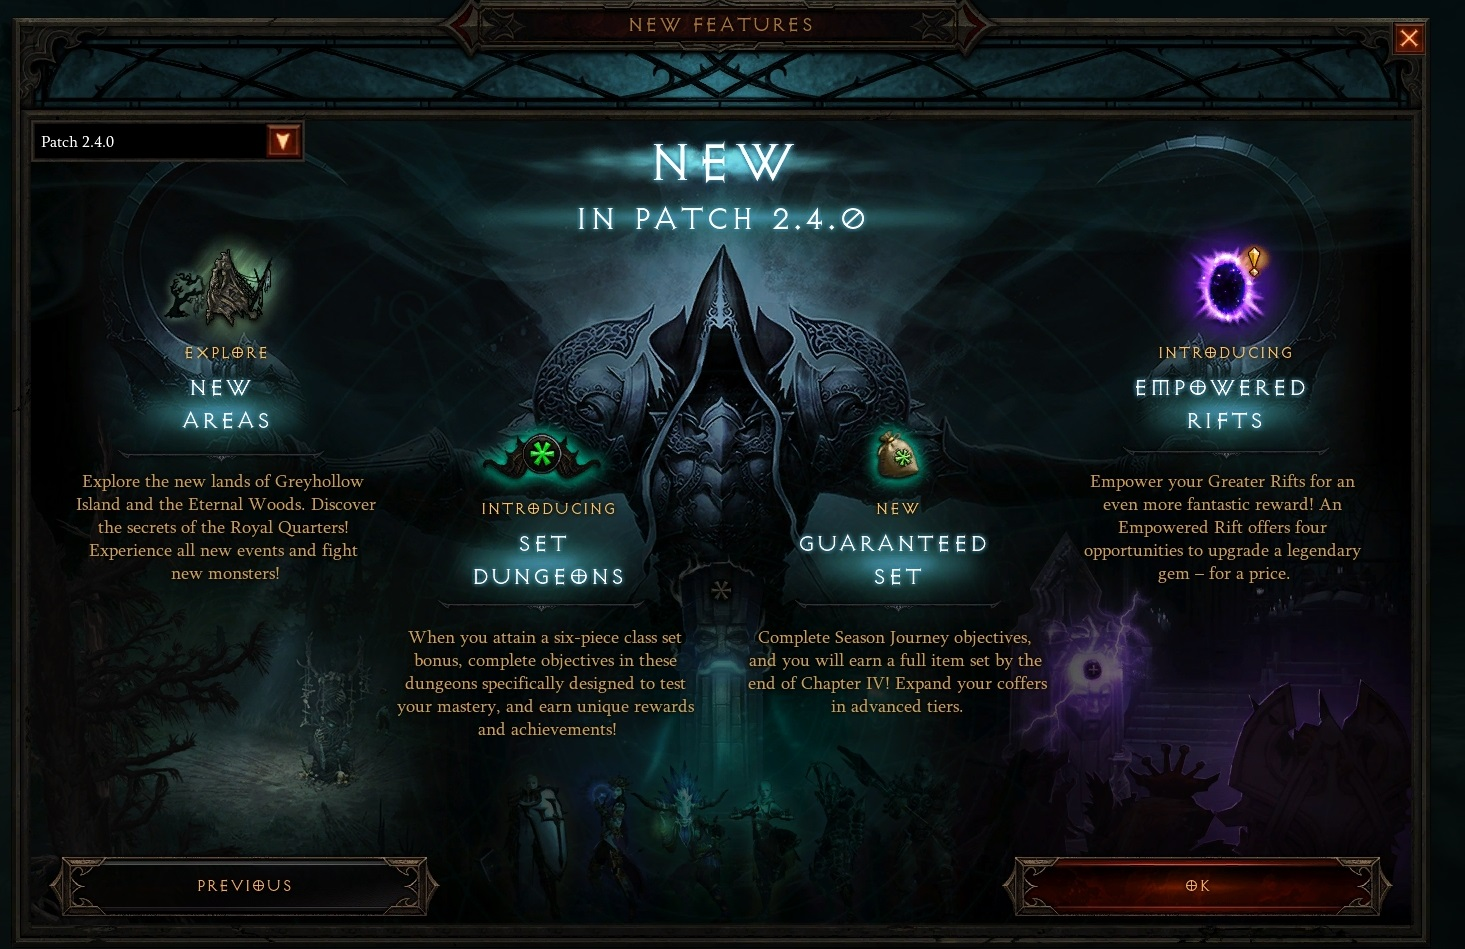 Diablo 3 Patch 2.4.0 Known Issues